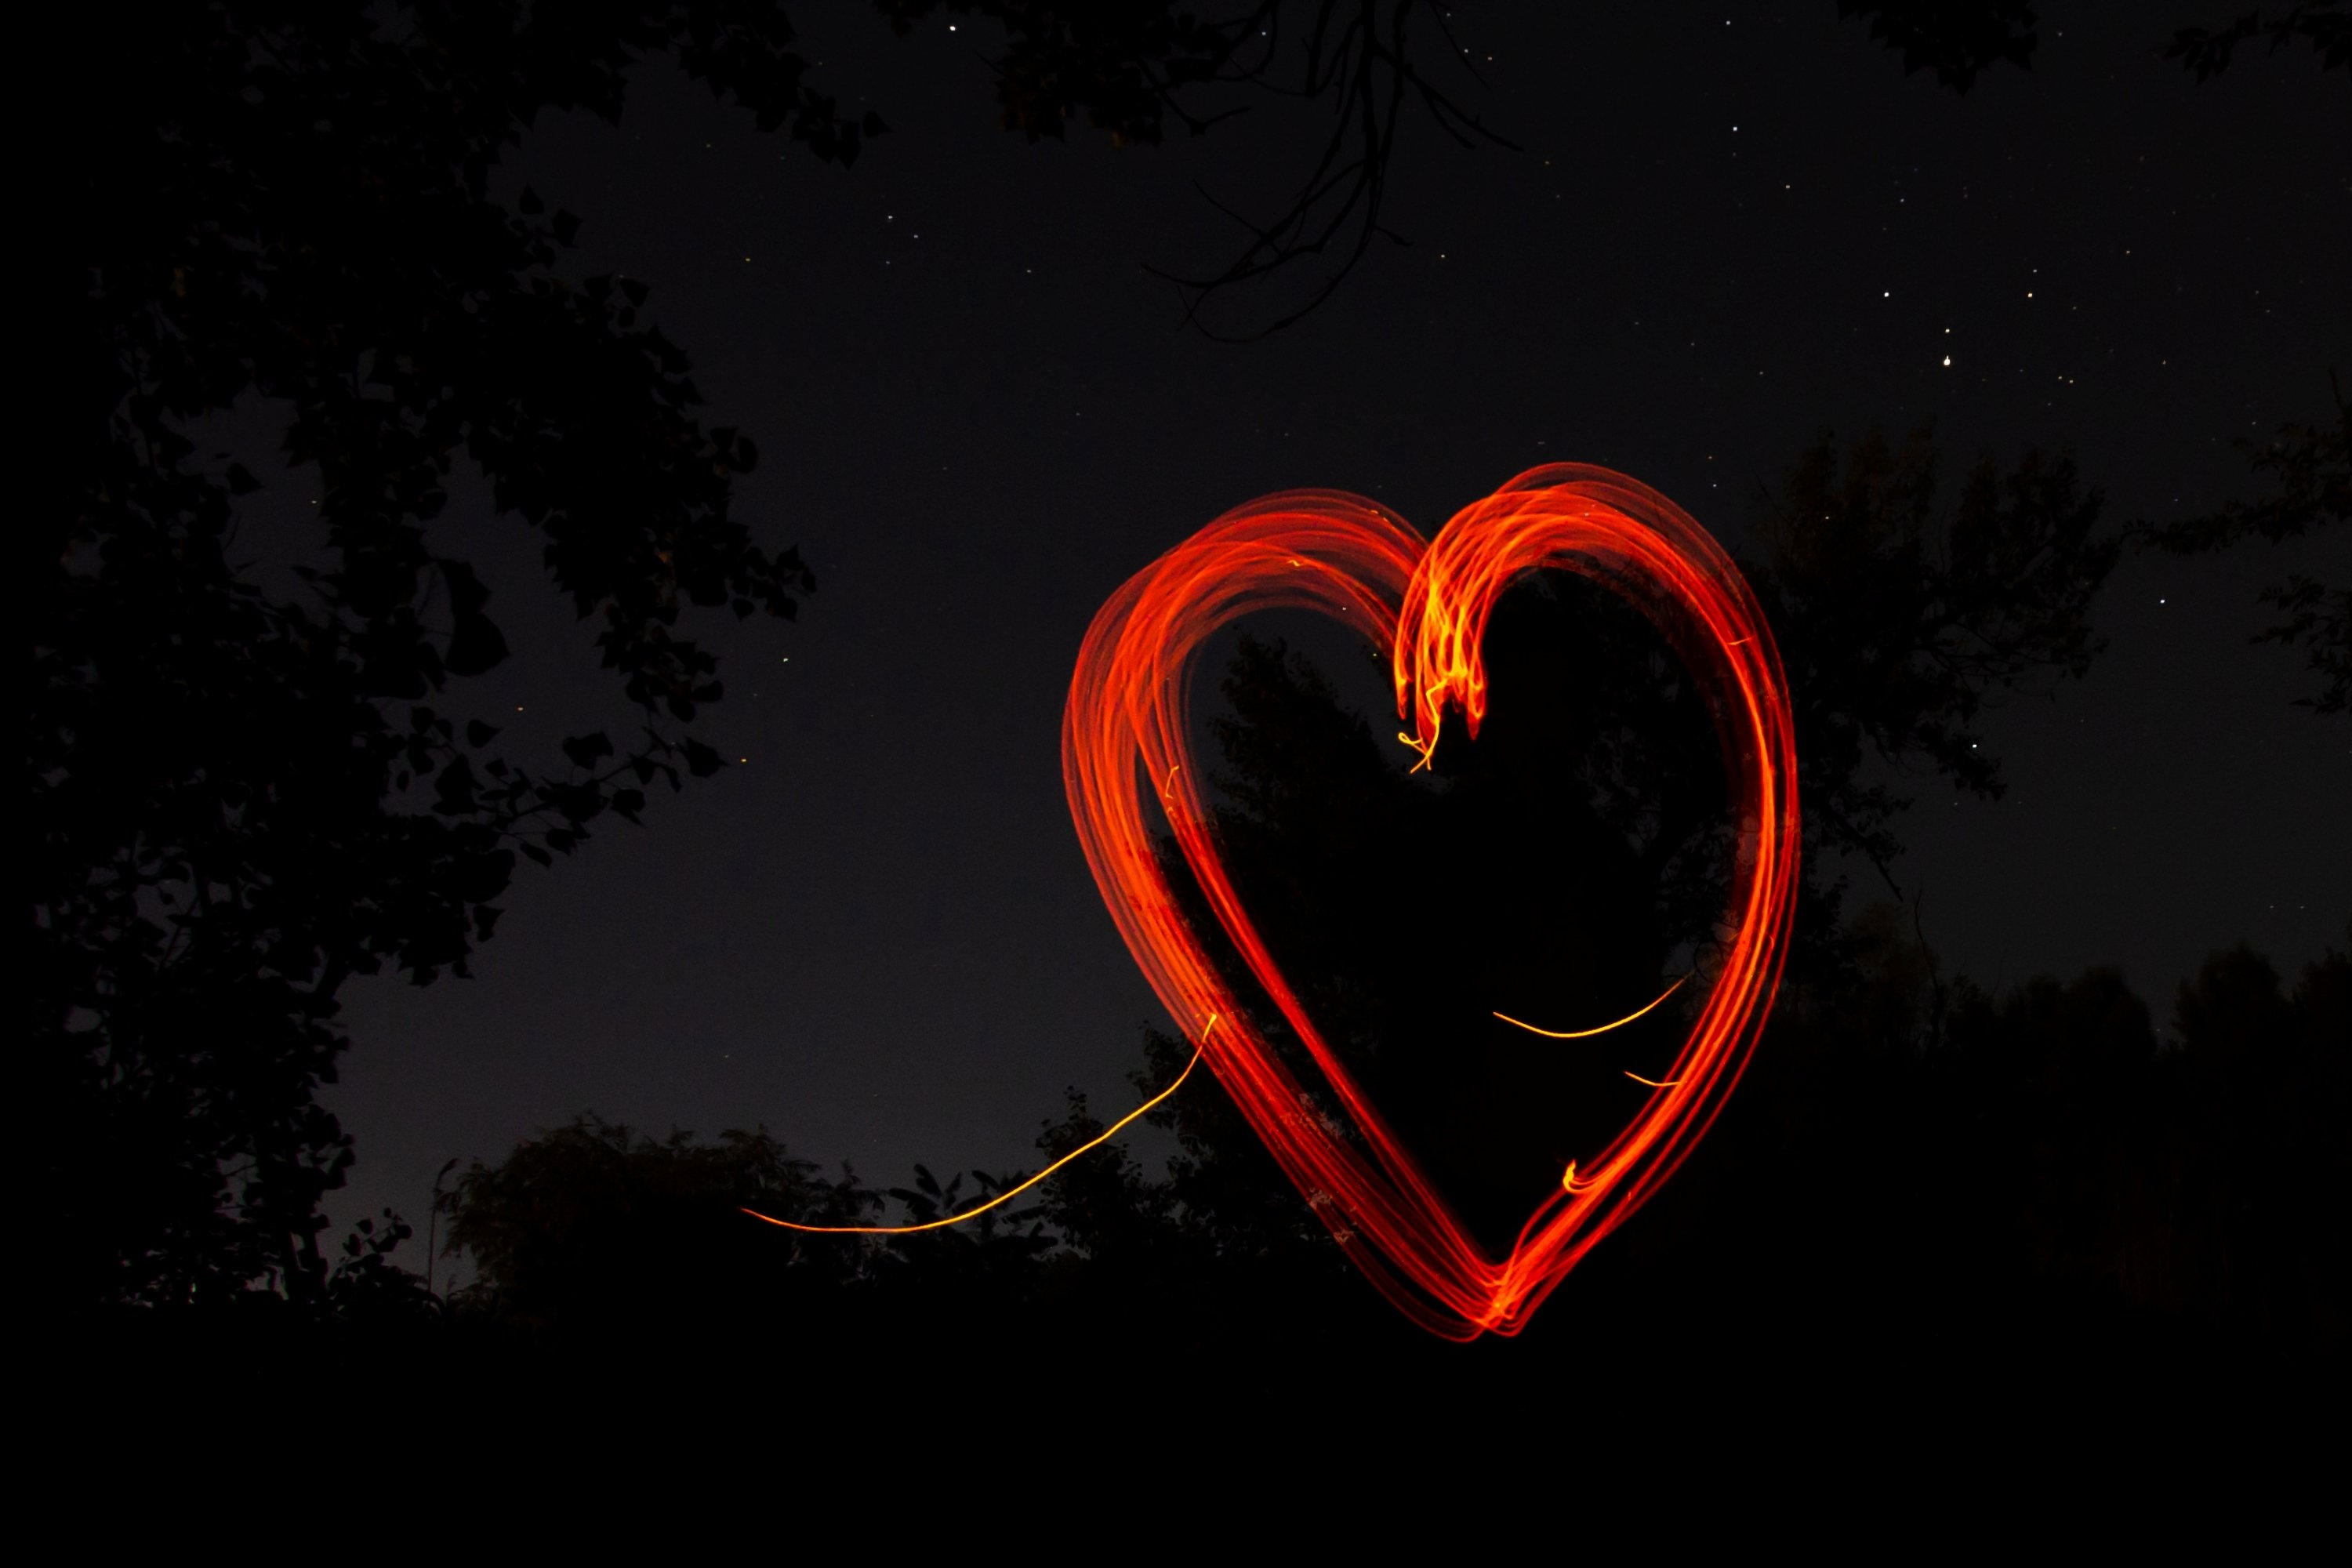 Red heart drawn by fire on black night background example image 1